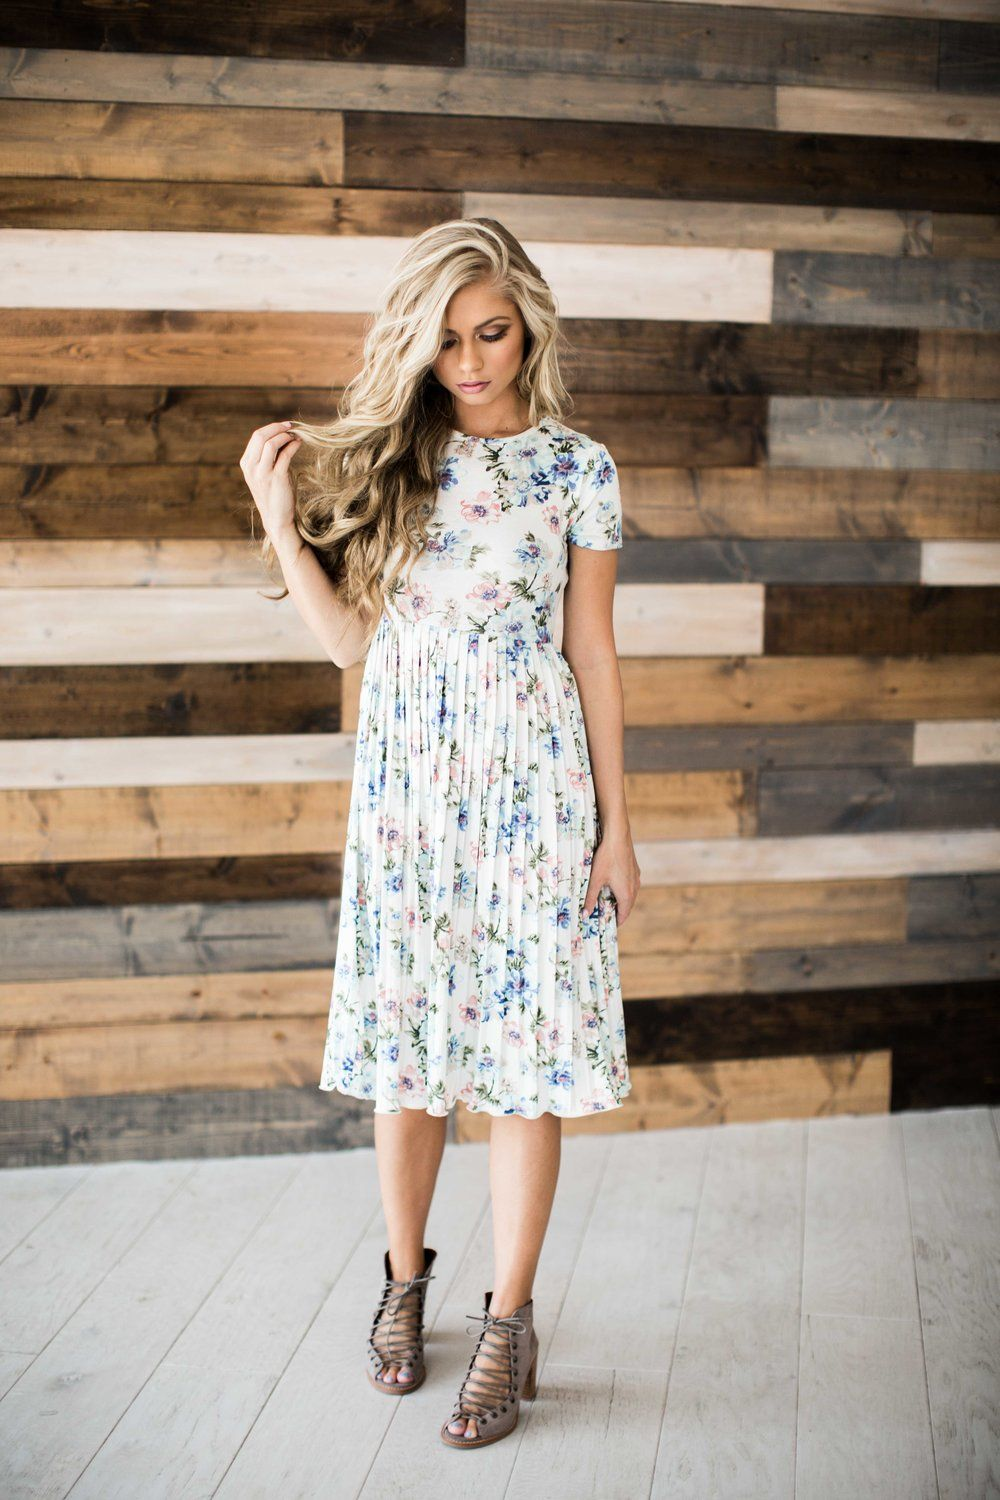 232e0ff99d7 Cute floral dress. Like the pleated skirt to give the dress a little  something extra.